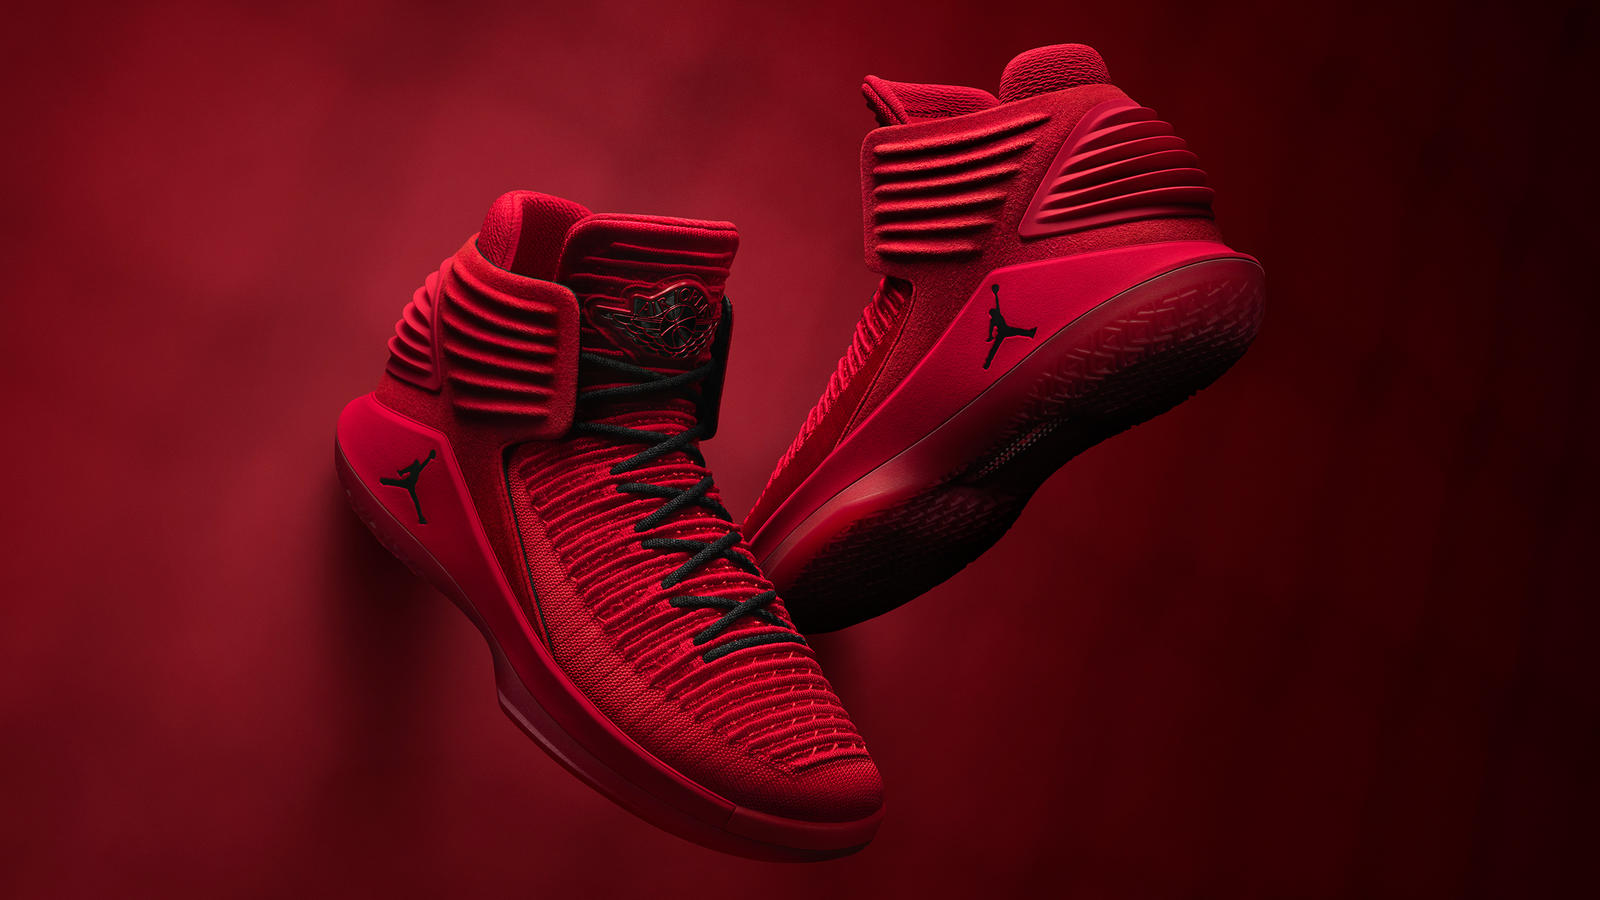 Introducing the Air Jordan XXXII 28